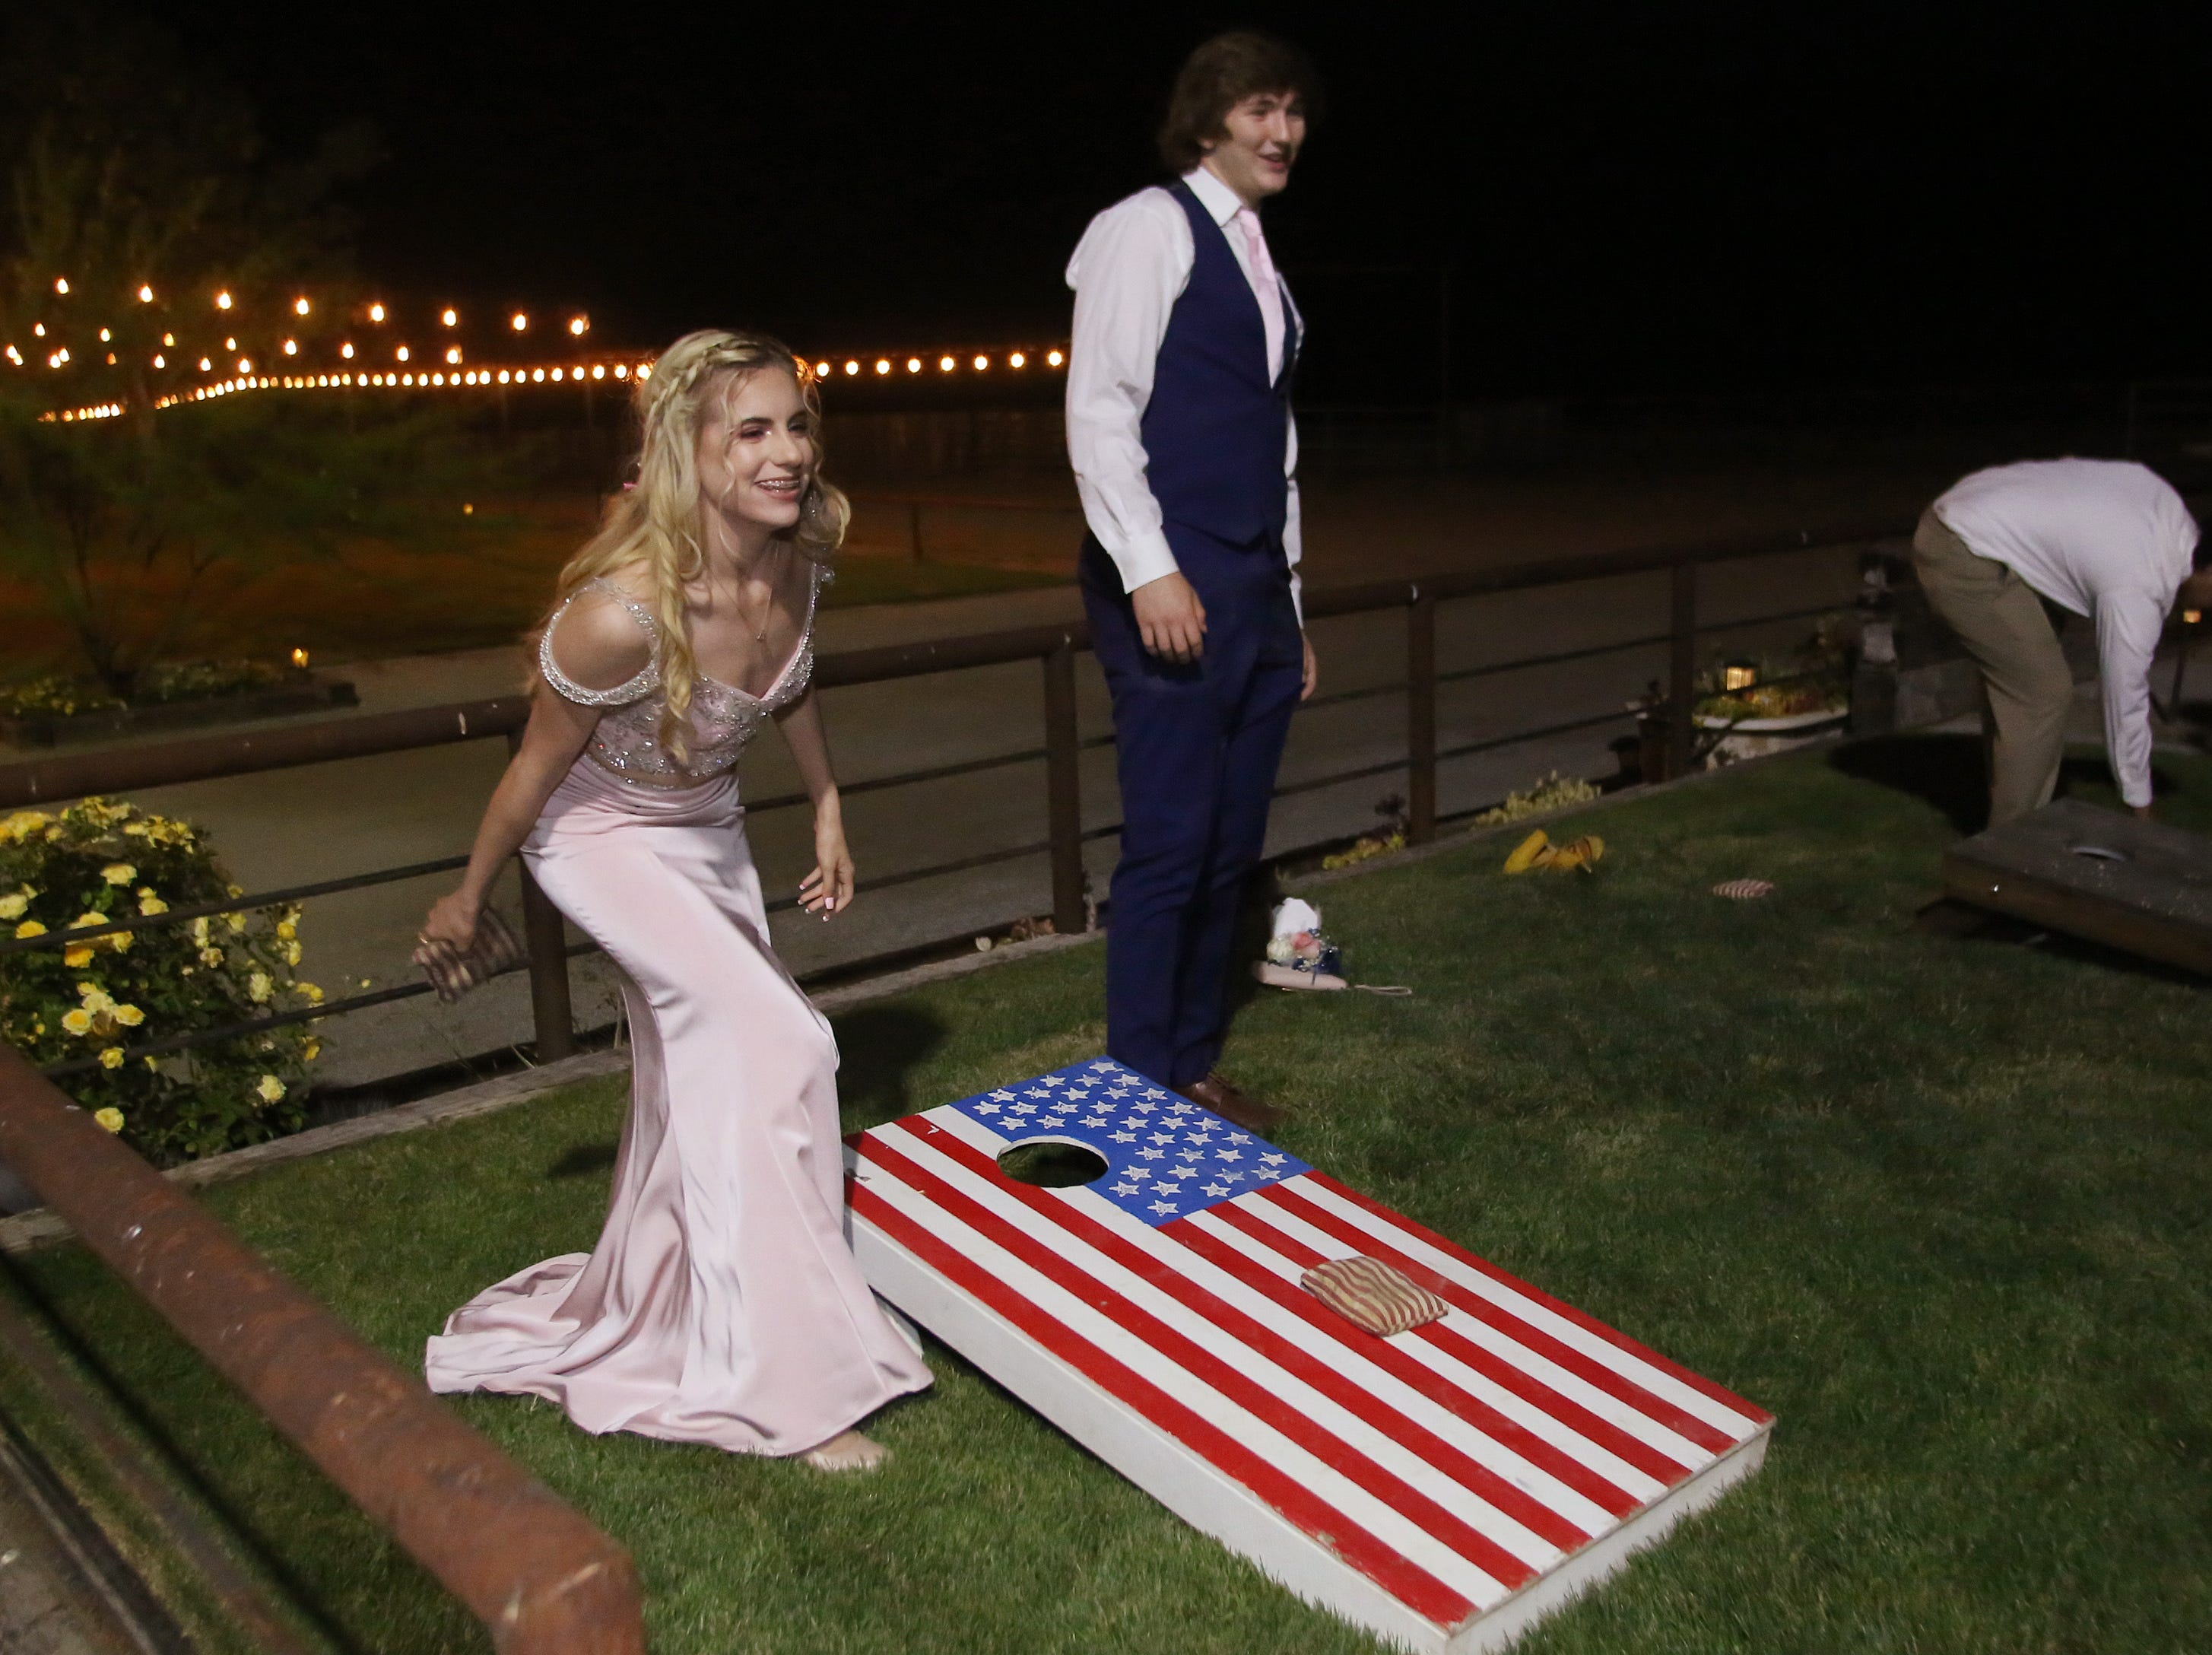 Amber Zeno and Eric Mittlestad have fun at the bean bag tosss at the Exeter Union High School prom Saturday, May 4, 2019 in Woodlake, Calif.